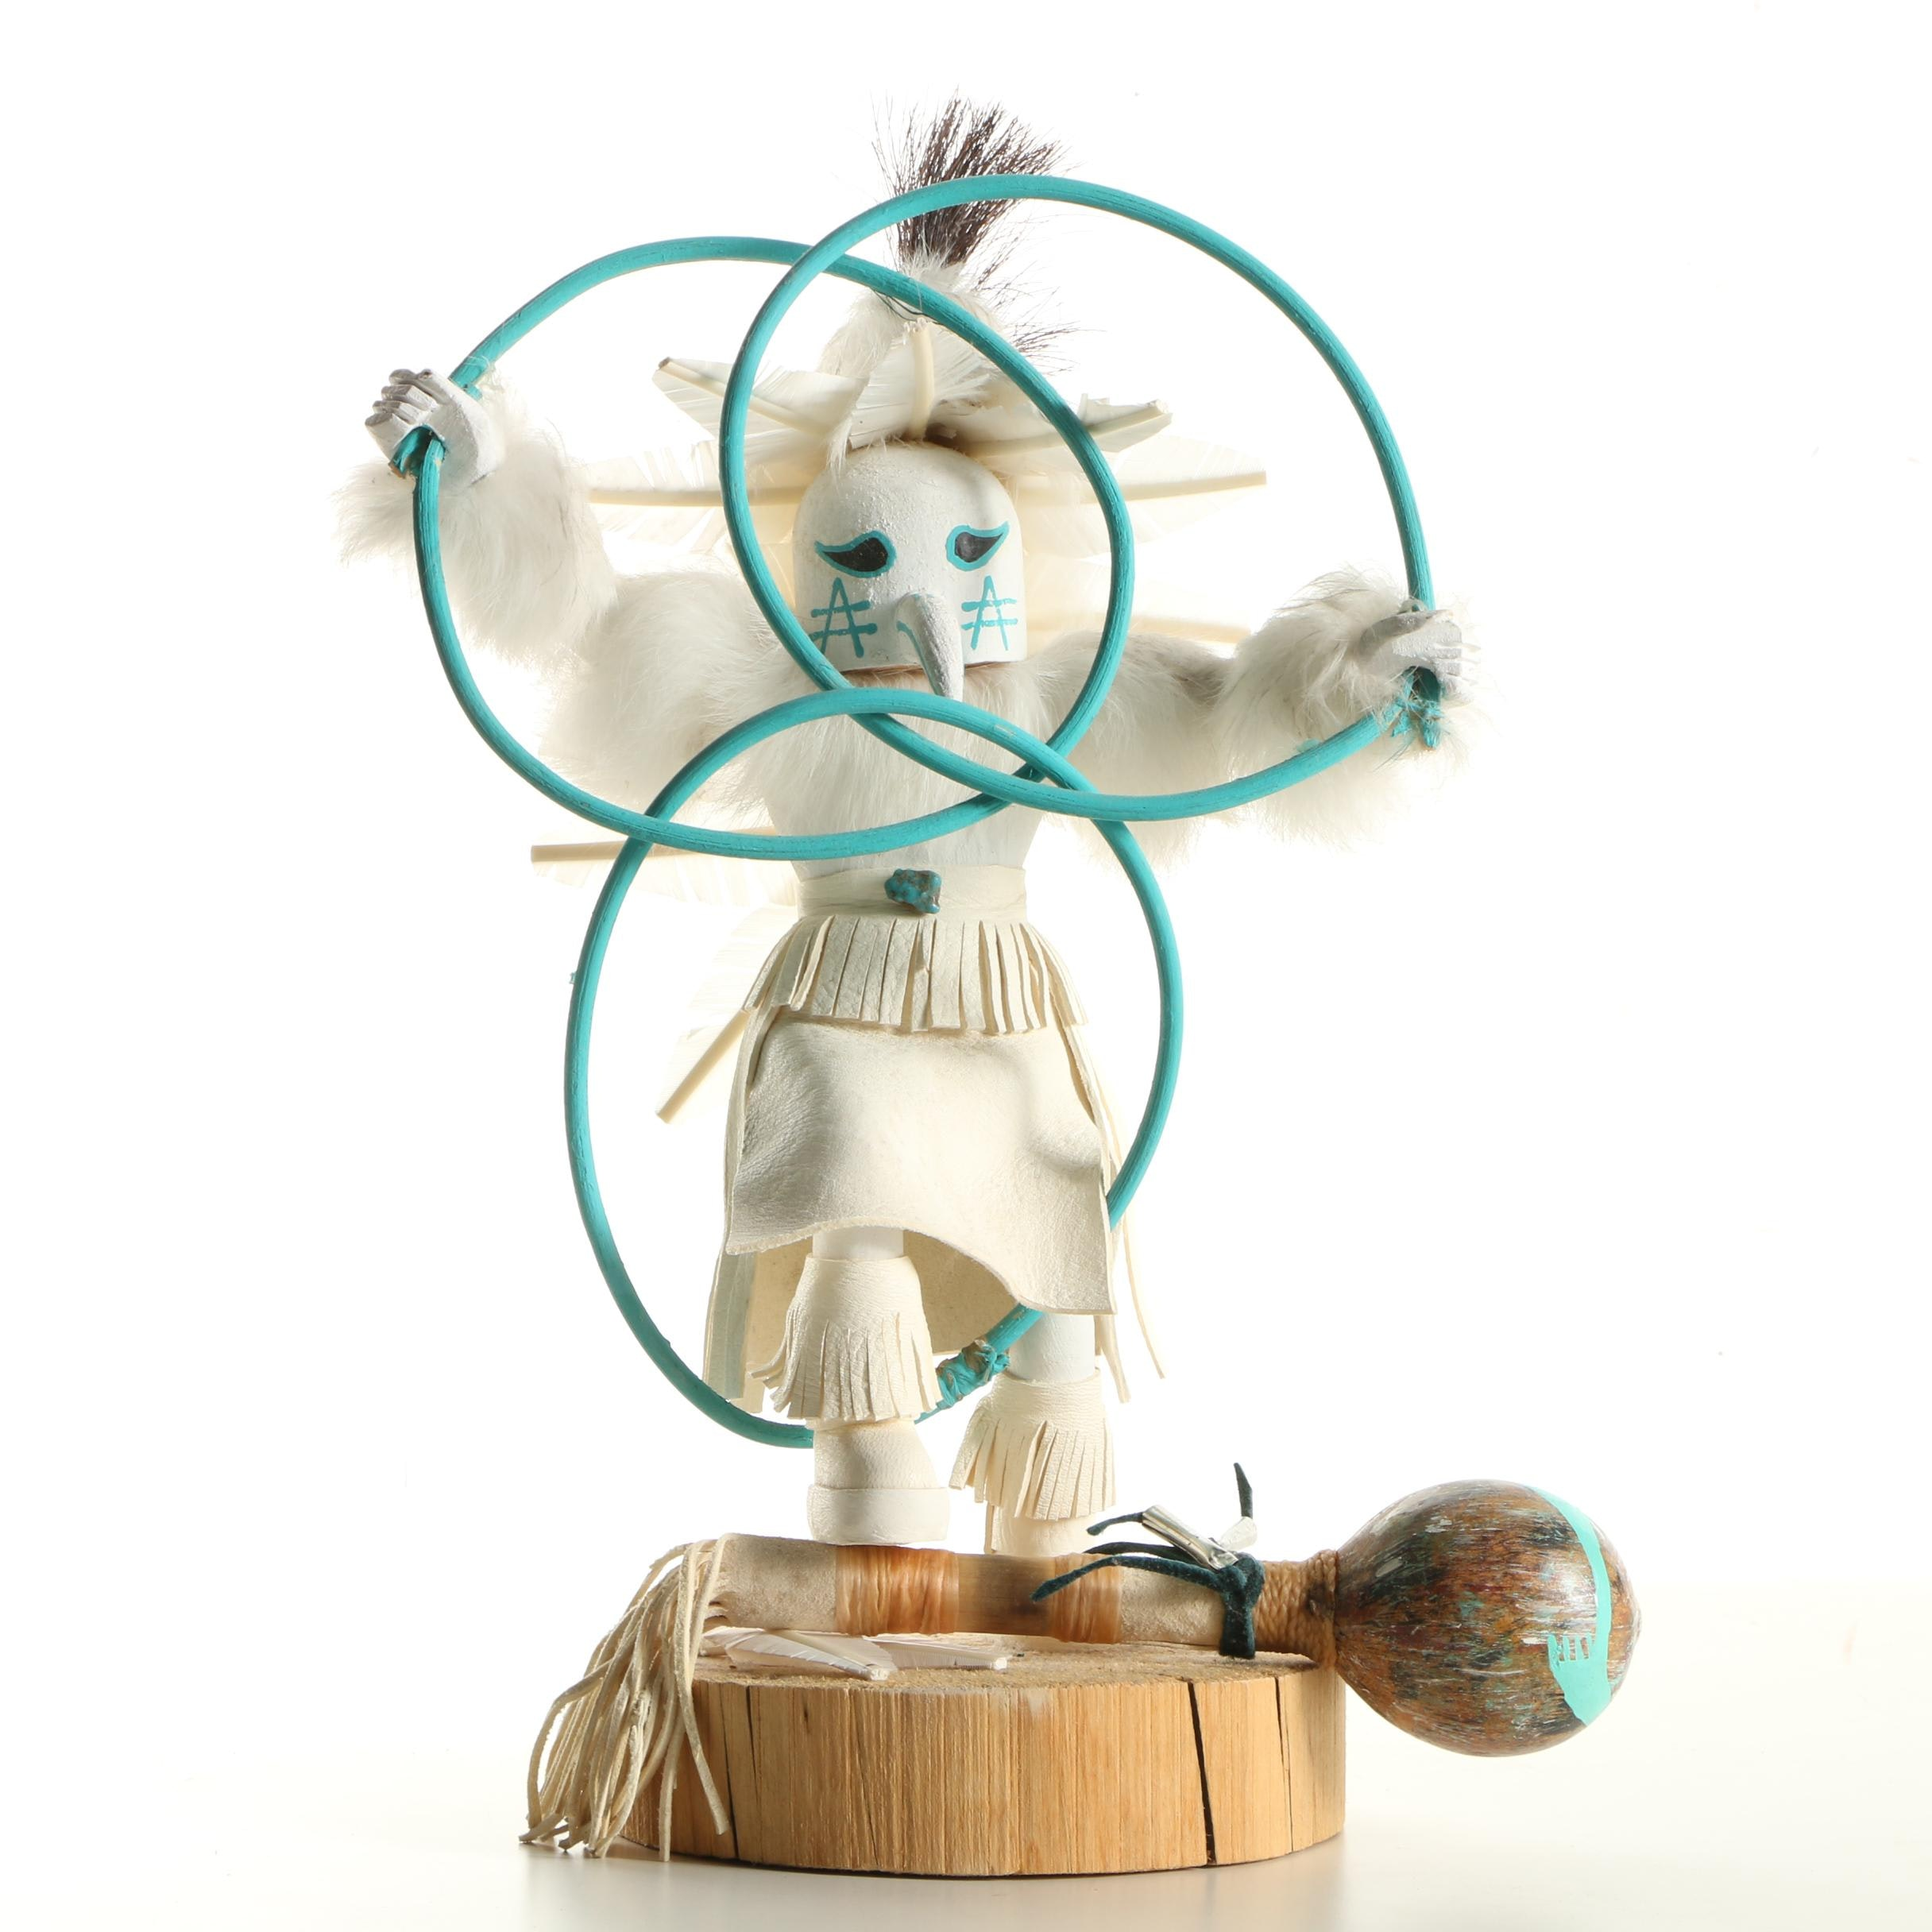 Navajo Style Hoop Dancer Kachina Doll with Rattle